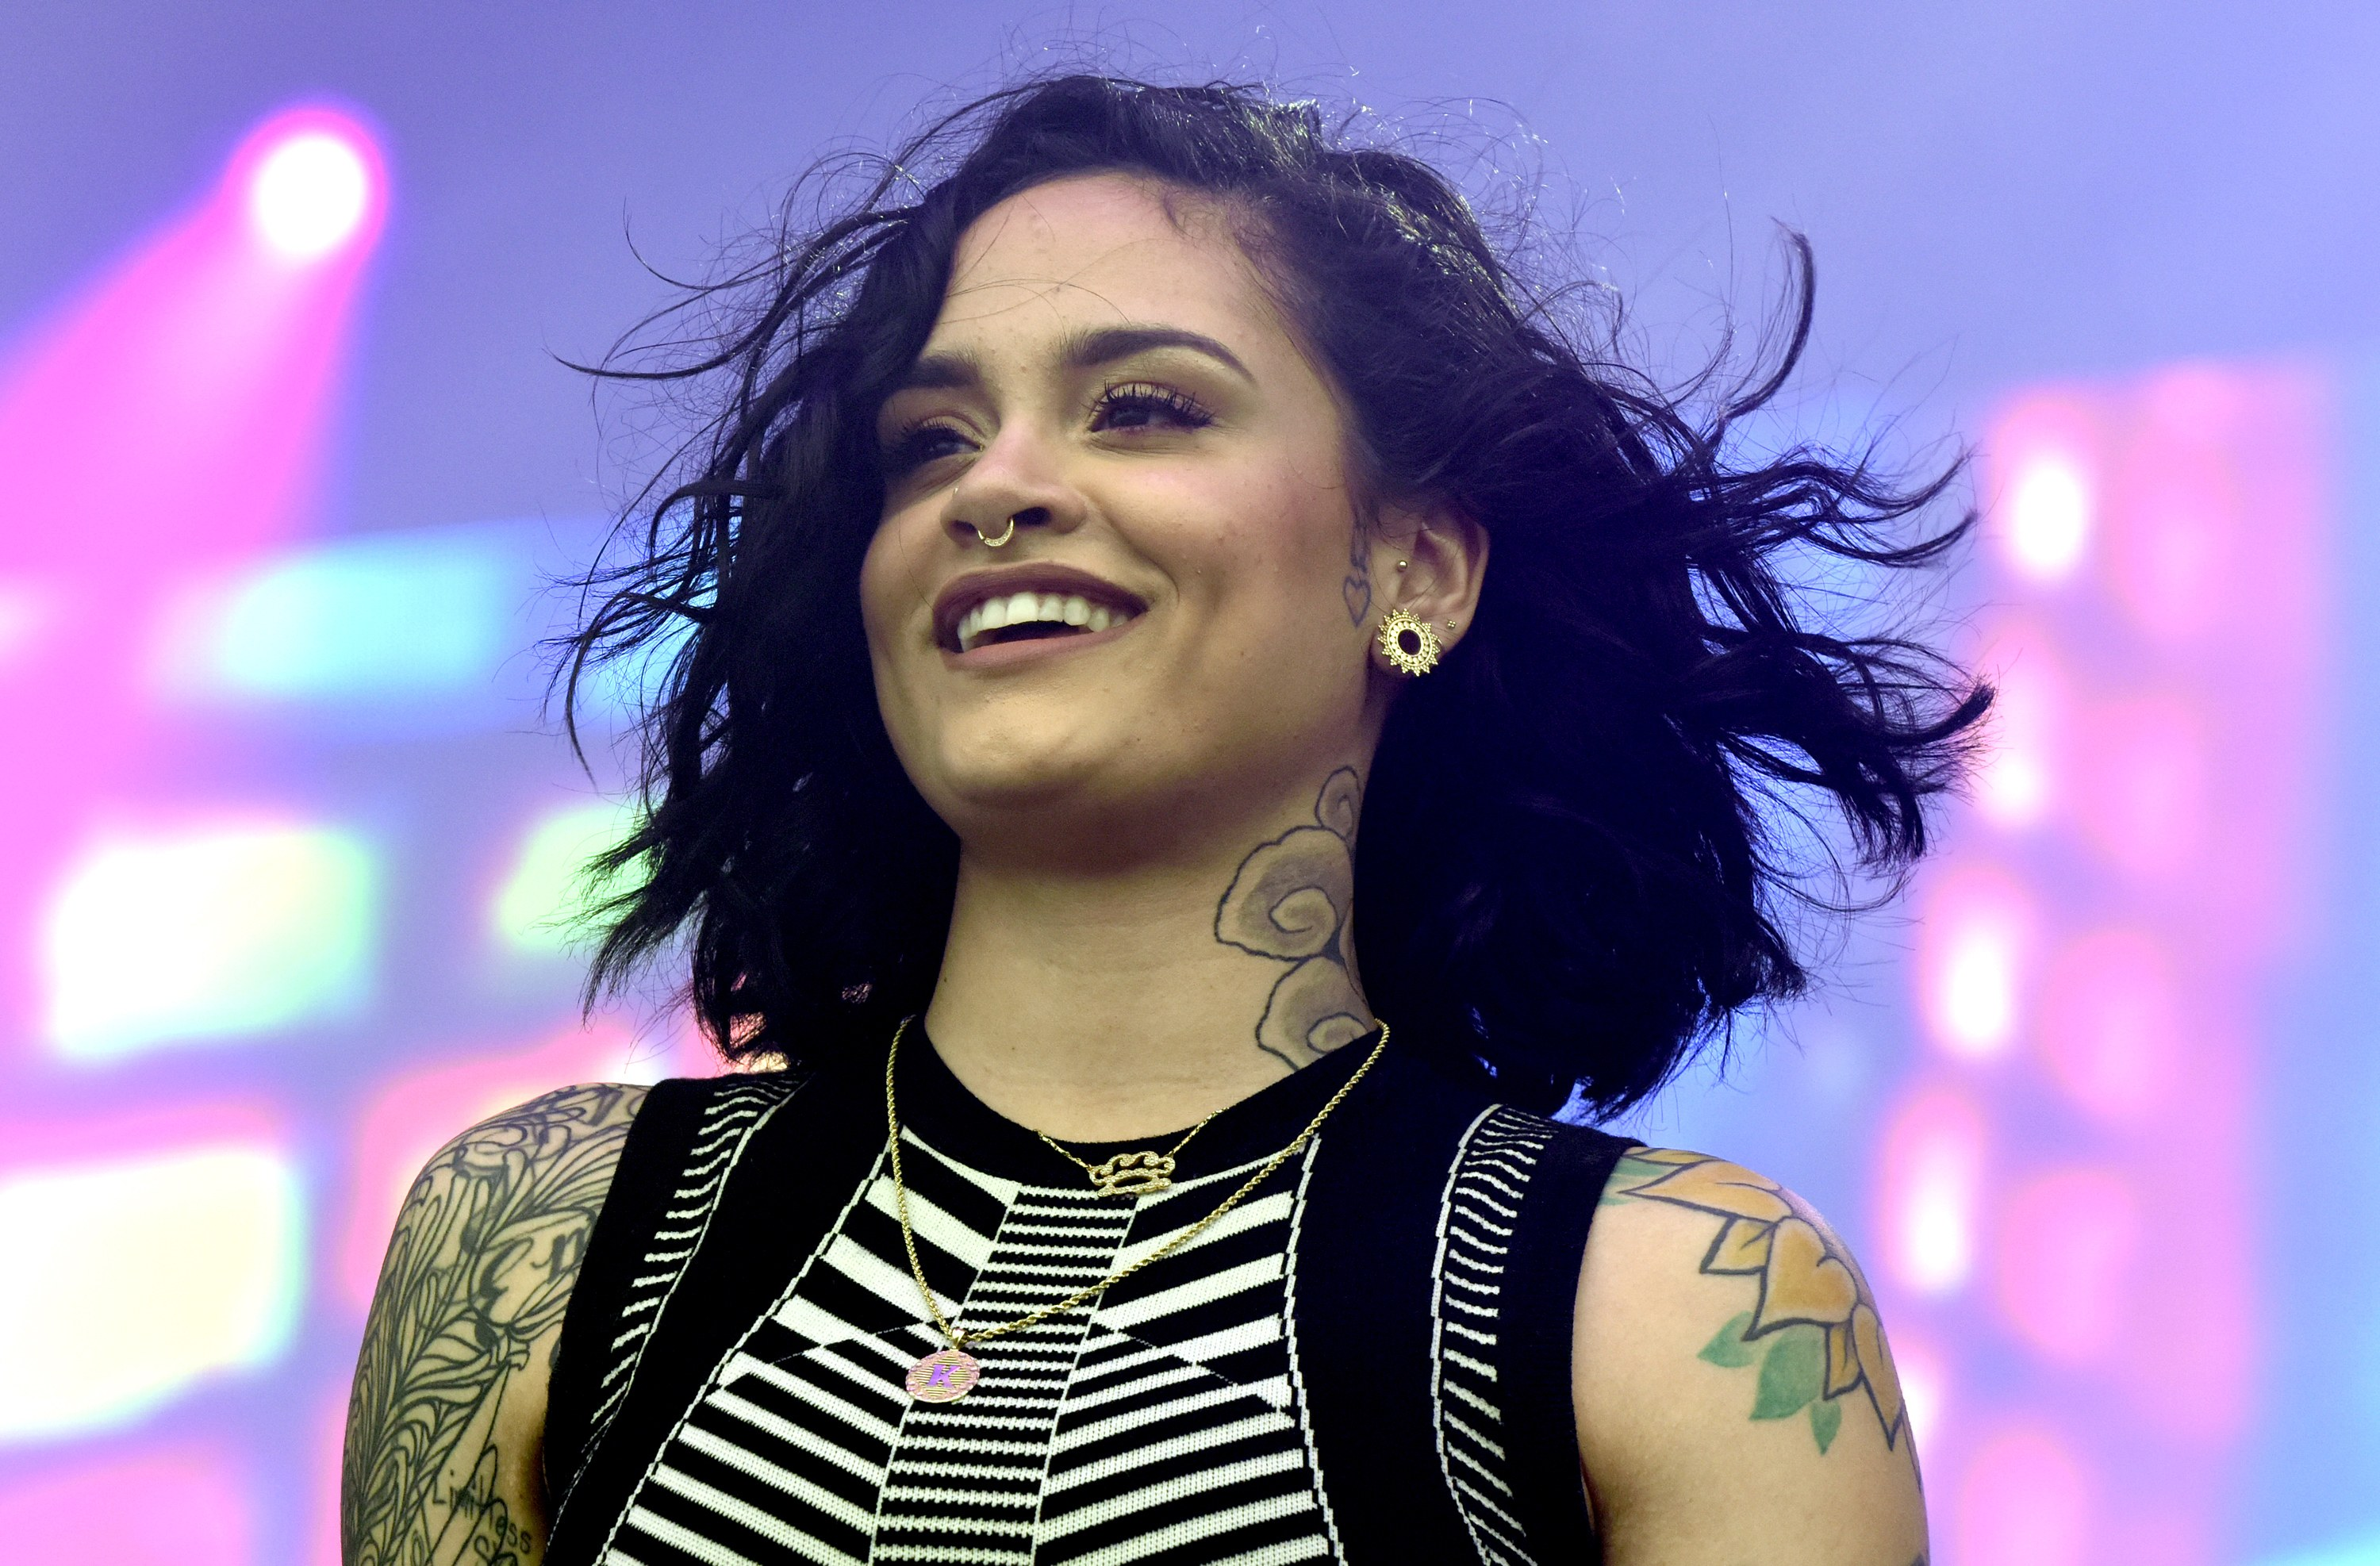 Pop singer Kehlani's pregnancy has been scrutinized due to her queer identity. (Image via Teen Vogue)